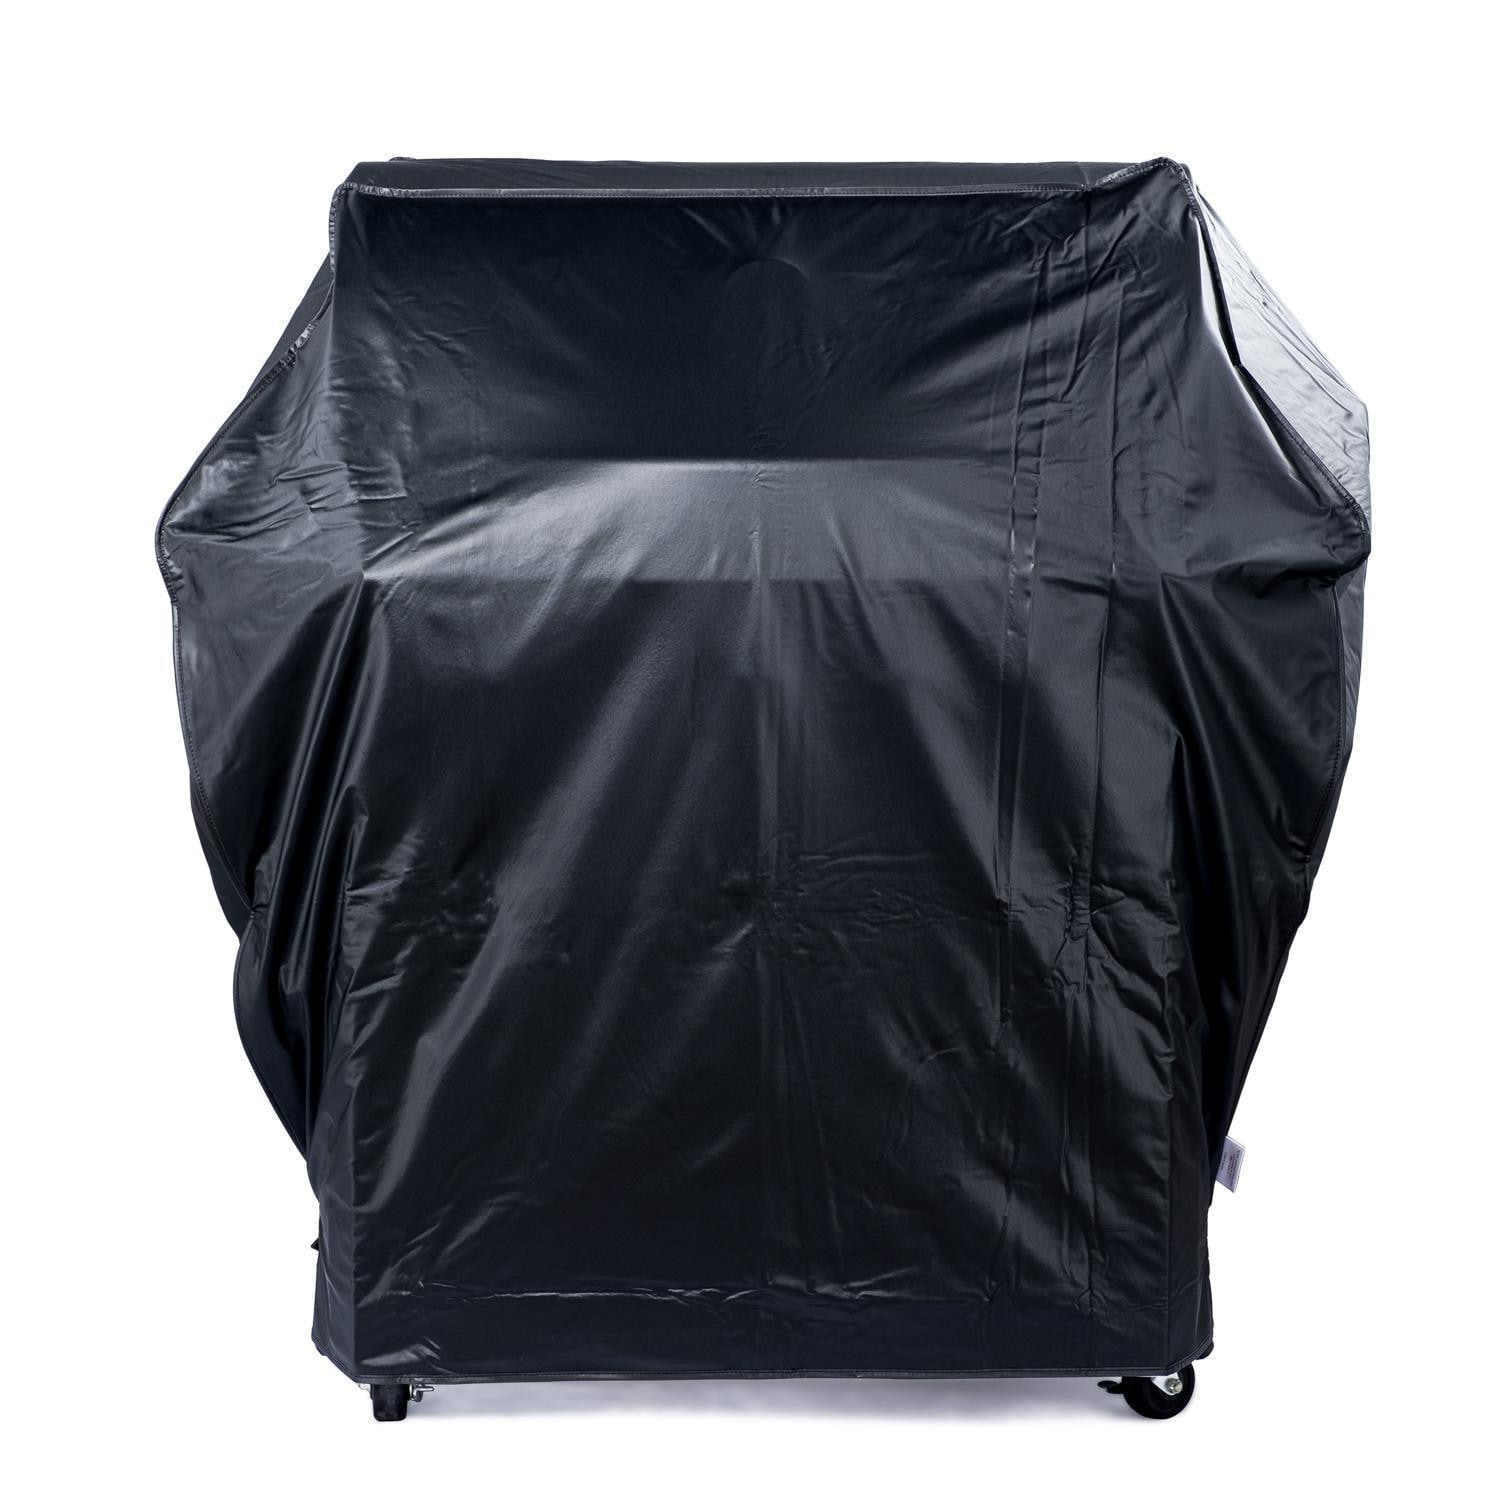 Blaze Grill Cover For Professional LUX 44-Inch Freestanding Gas Grills - 4PROCTCV